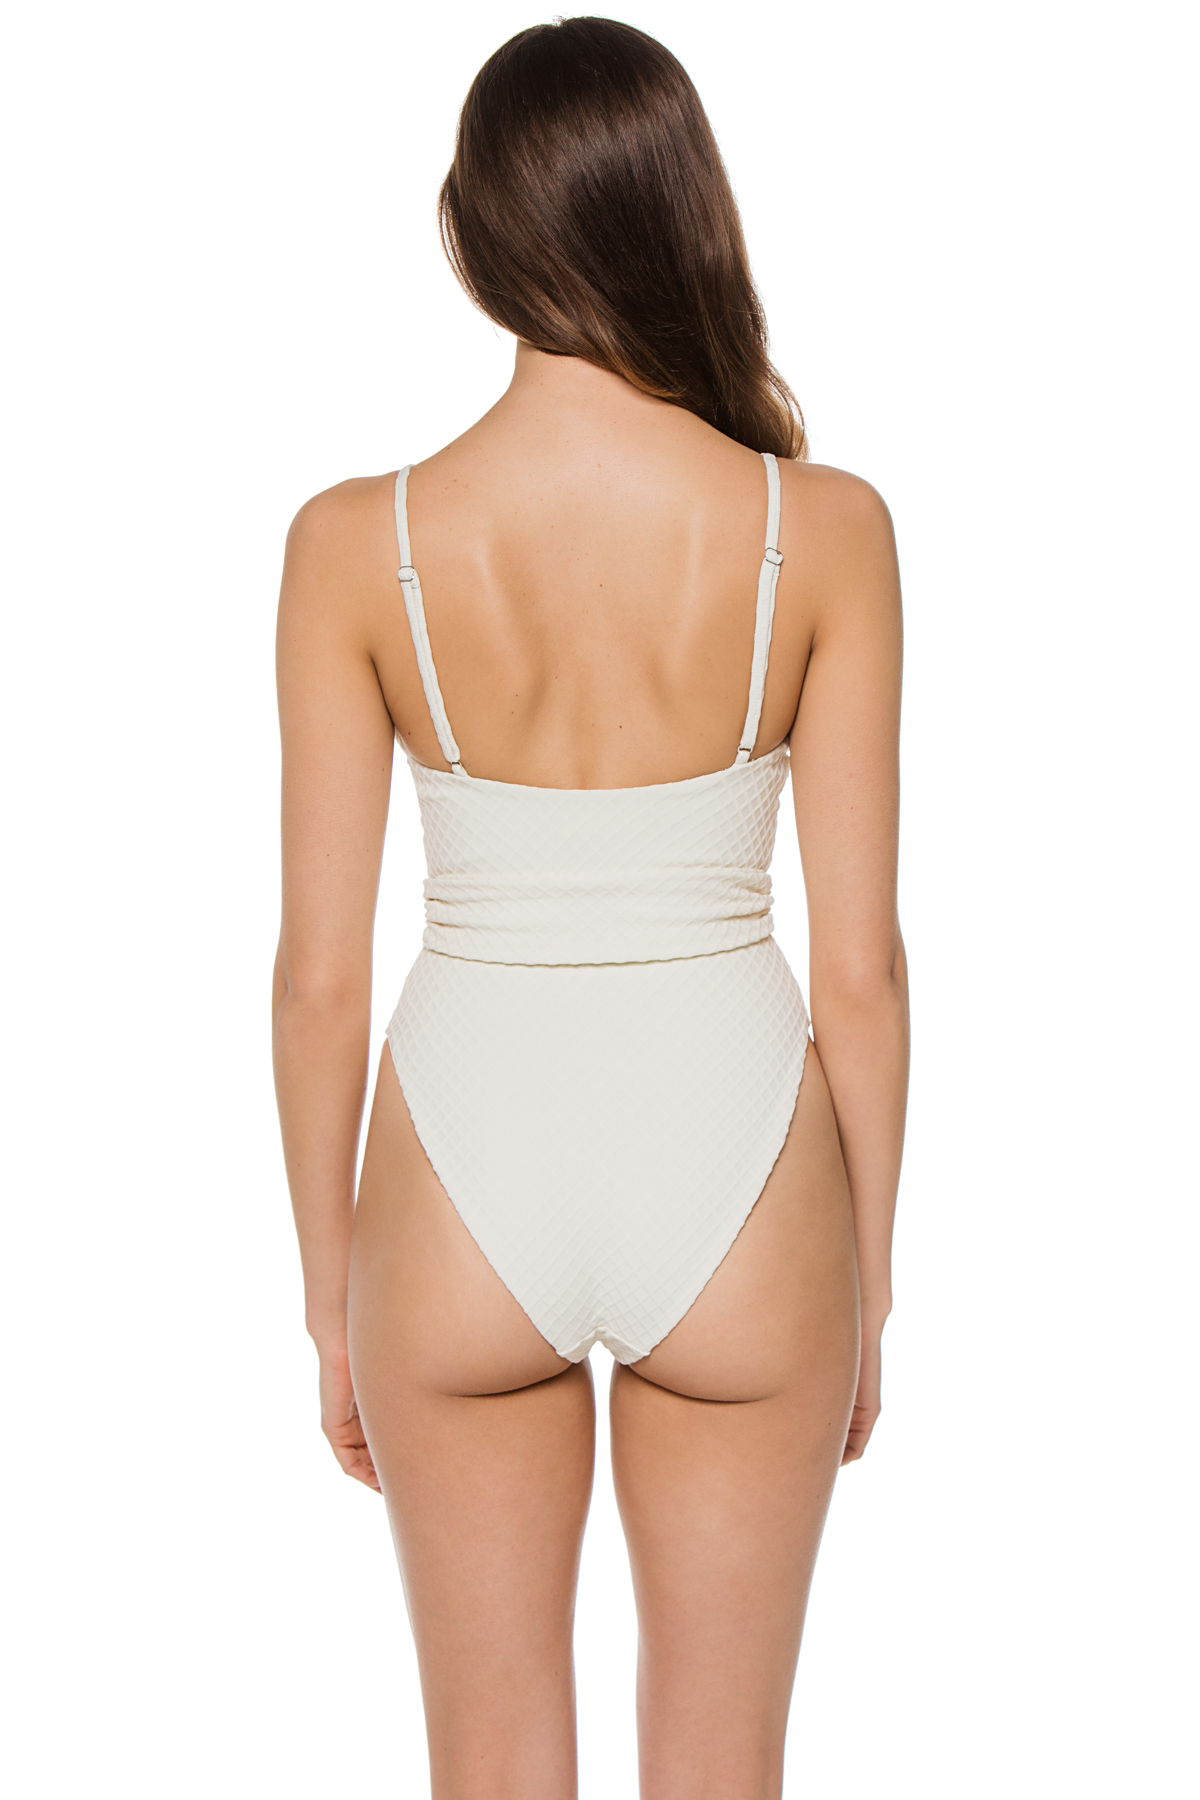 Gamela Over The Shoulder One Piece Swimsuit - Cream 2